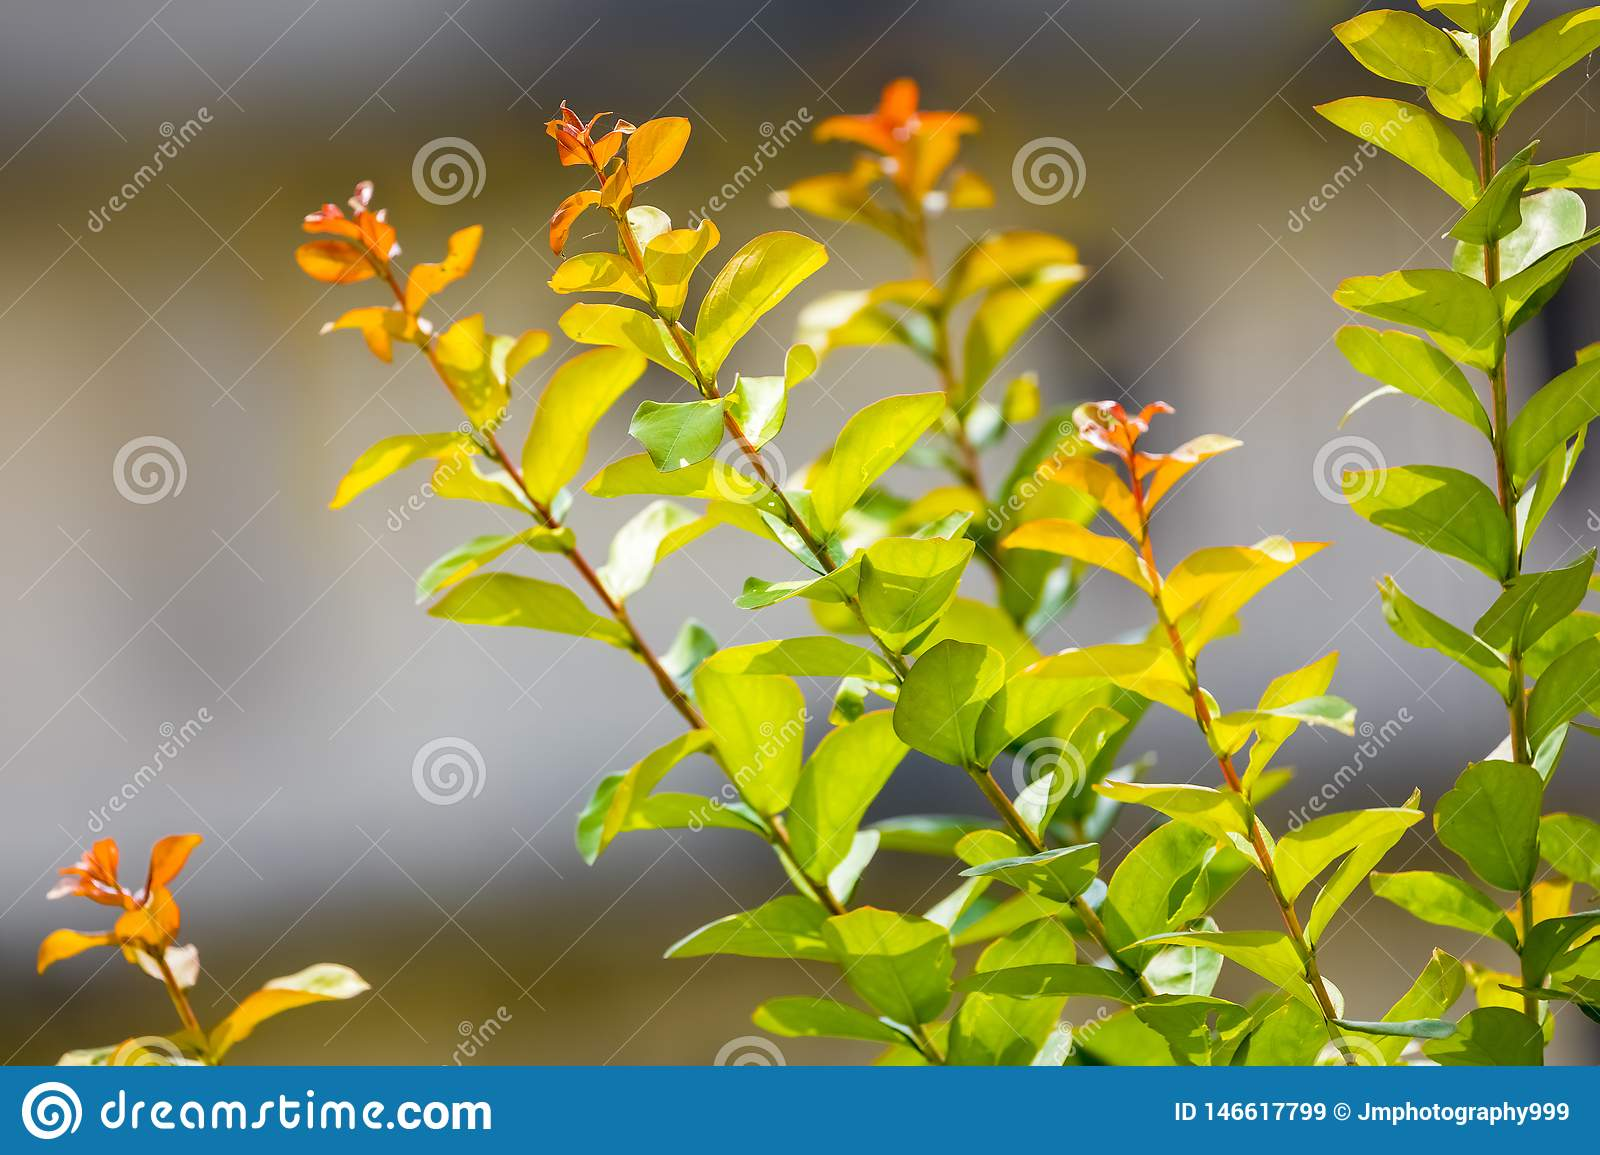 Beautiful leaves branches shining in sunlight